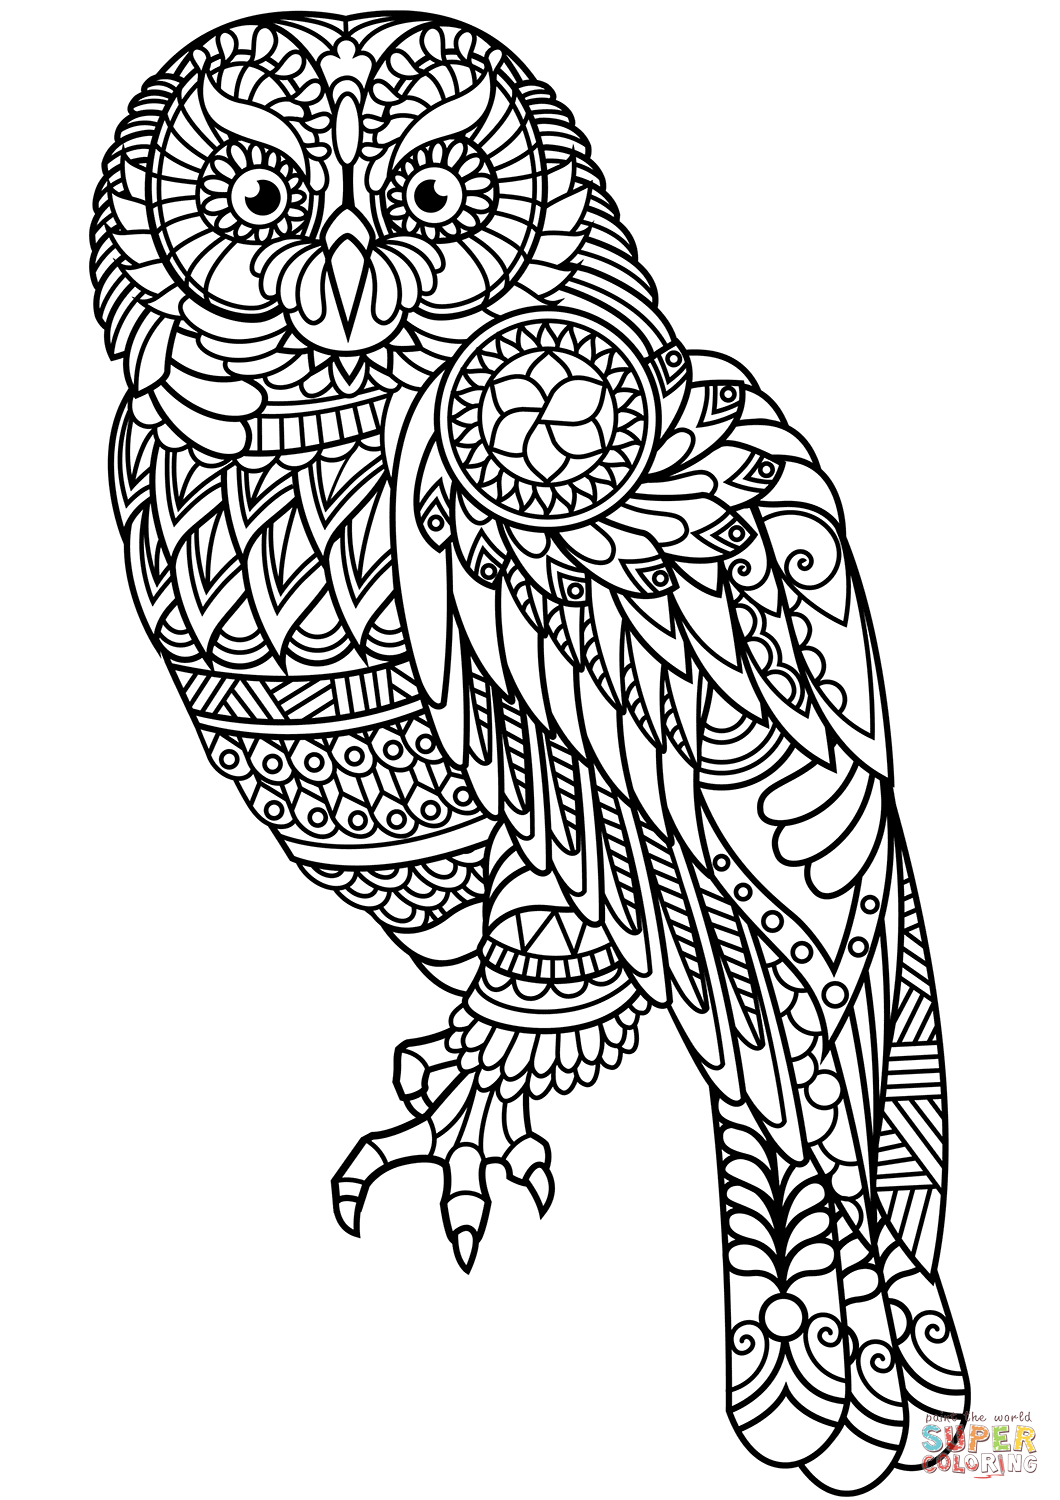 shelly beauchamp zen tangles coloring pages | Owl Zentangle coloring page from Zentangle category ...